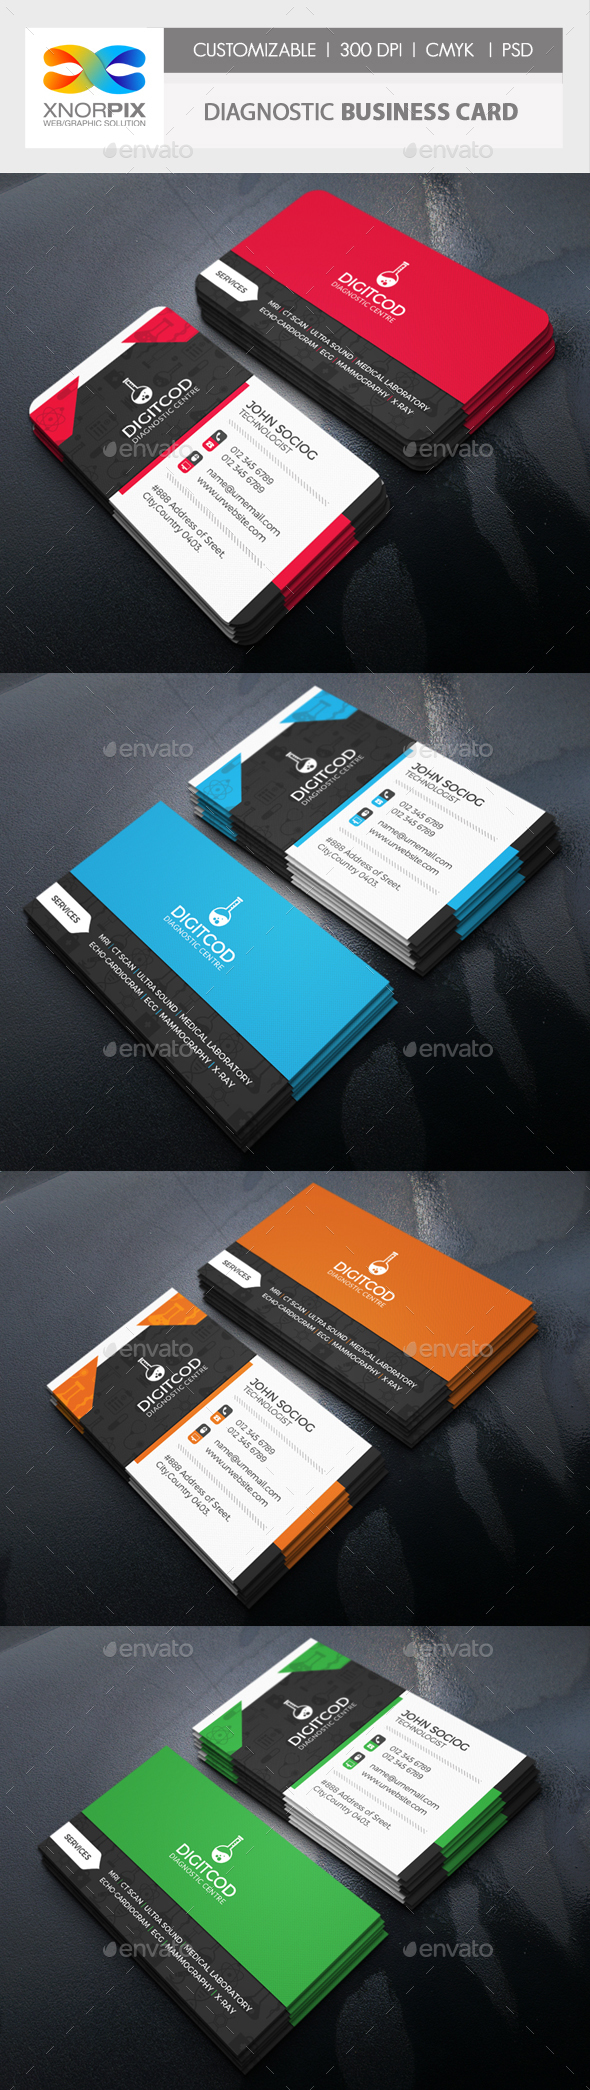 Diagnostic Business Card - Corporate Business Cards